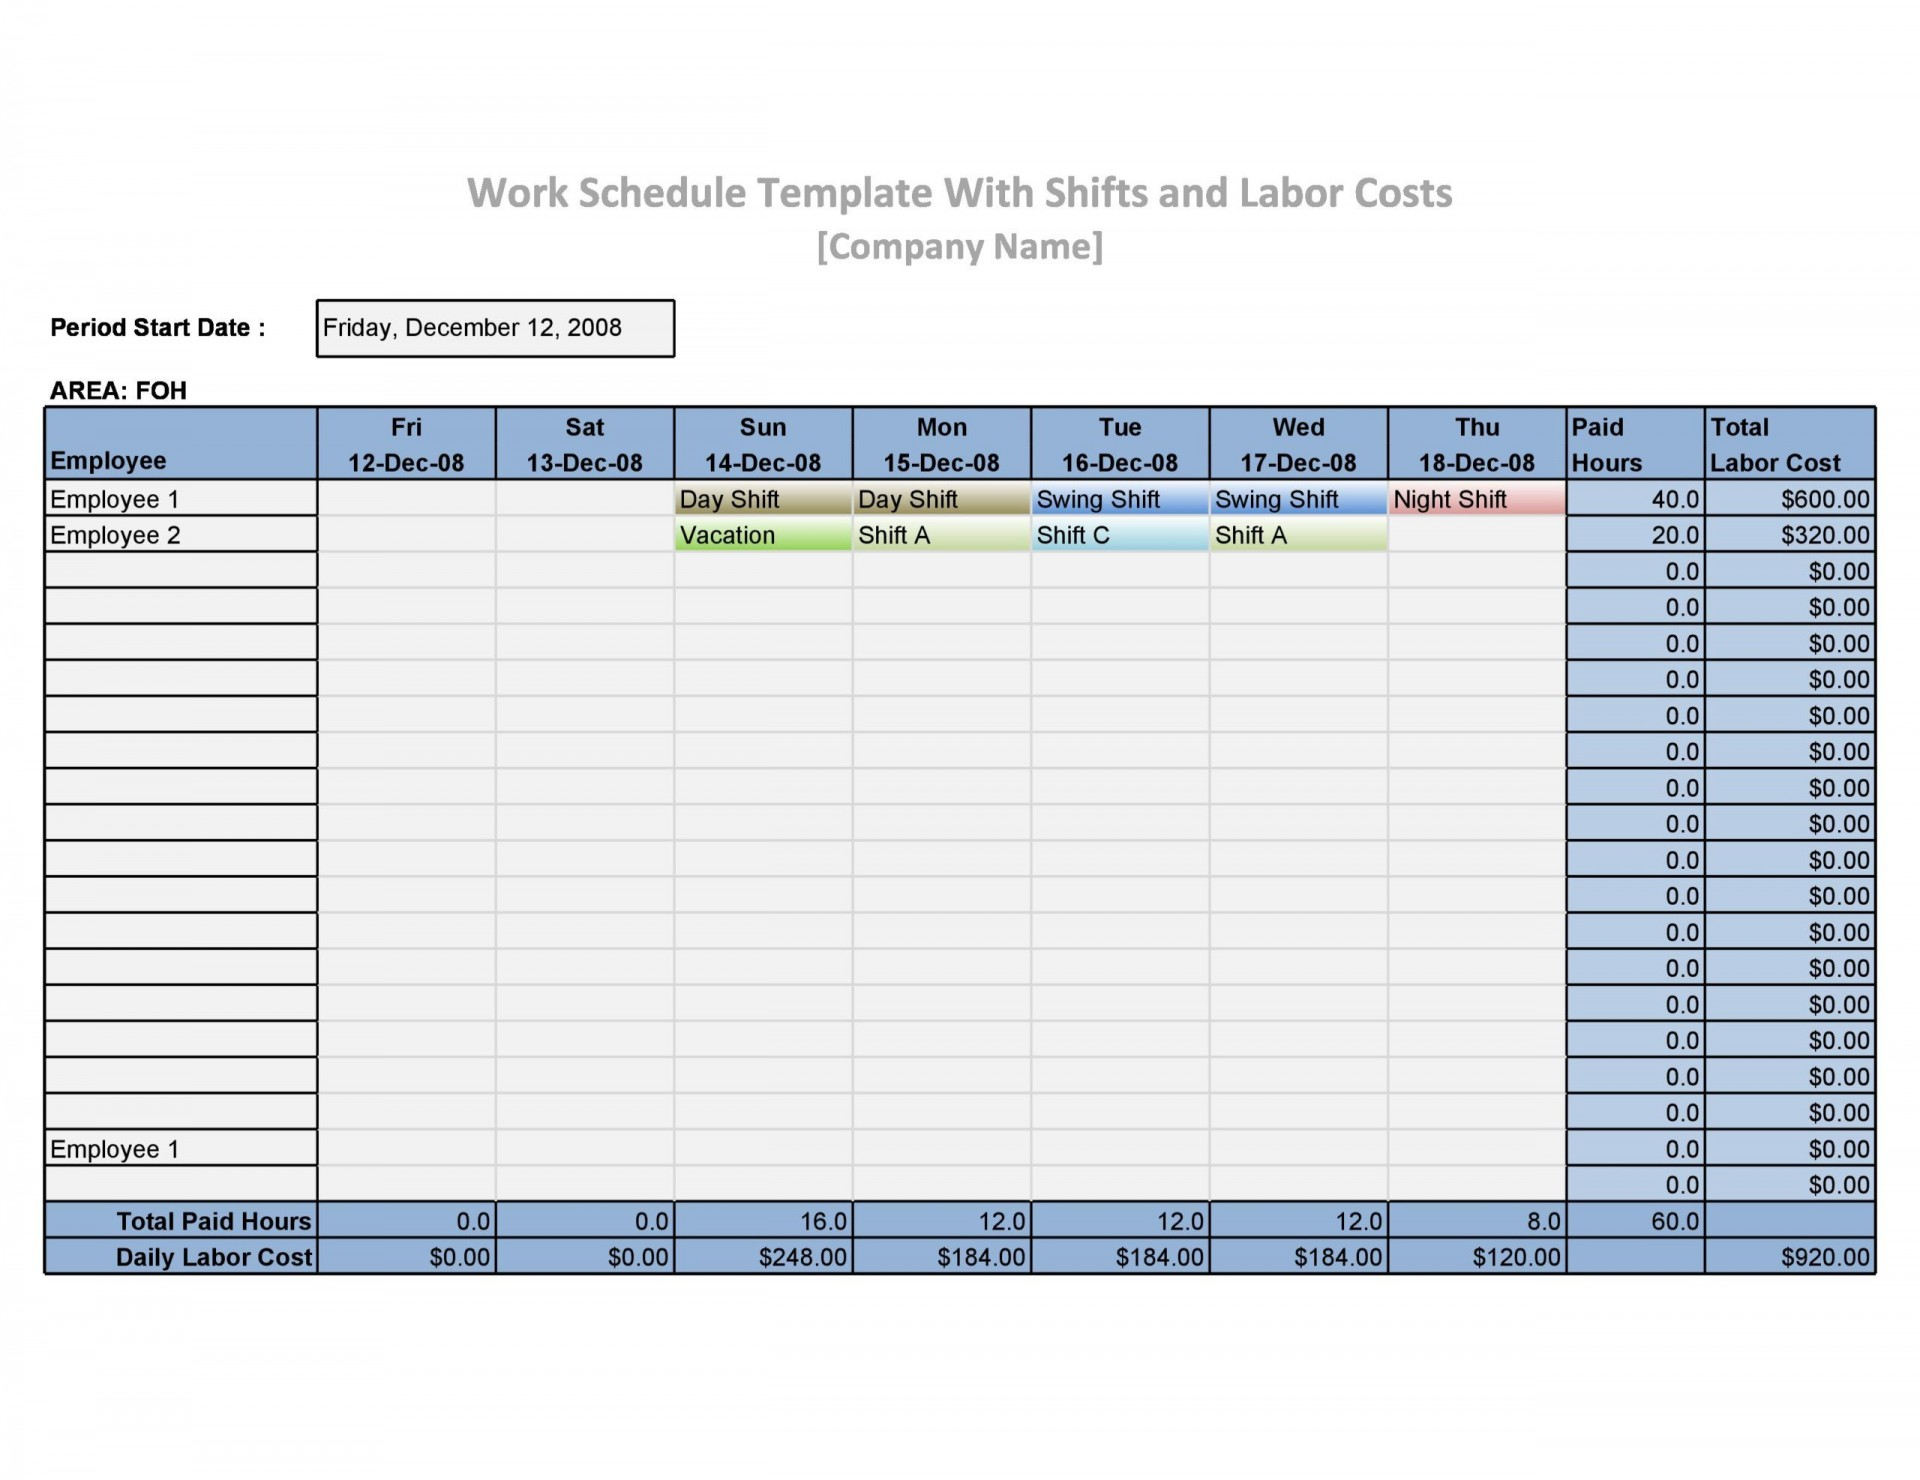 003 Remarkable Free Staff Scheduling Template Image  Templates Excel Holiday Planner Printable Weekly Employee Work Schedule1920